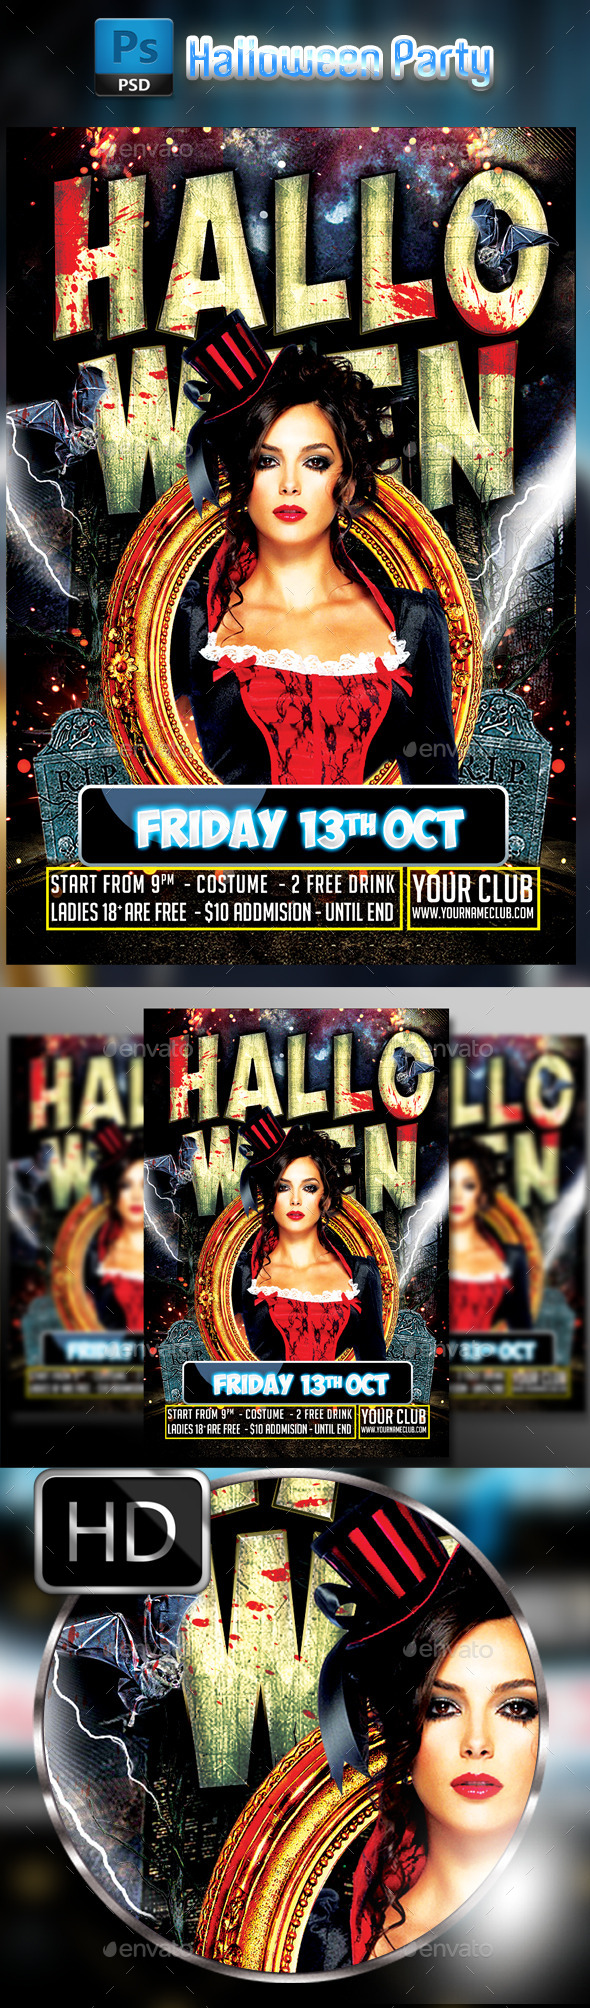 Halloween Party Flyer #3